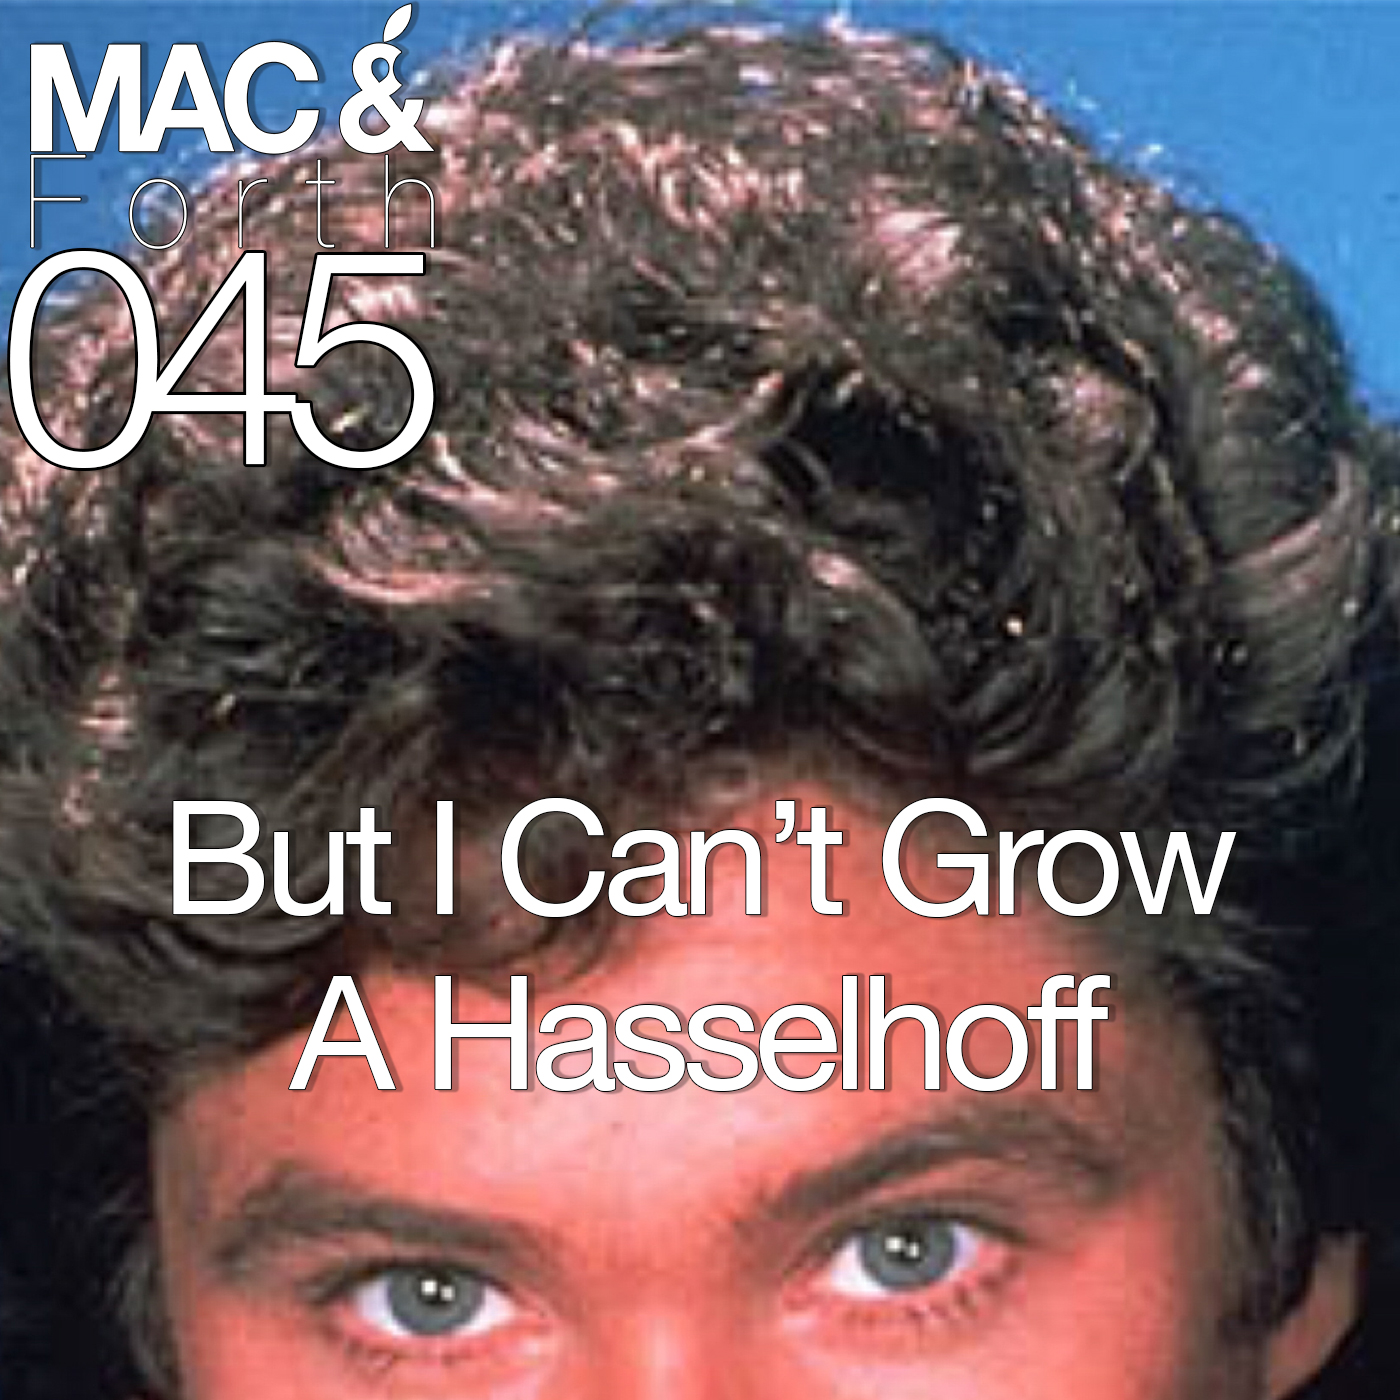 The Mac & Forth Show 045 - But I Can't Grow A Hasselhoff